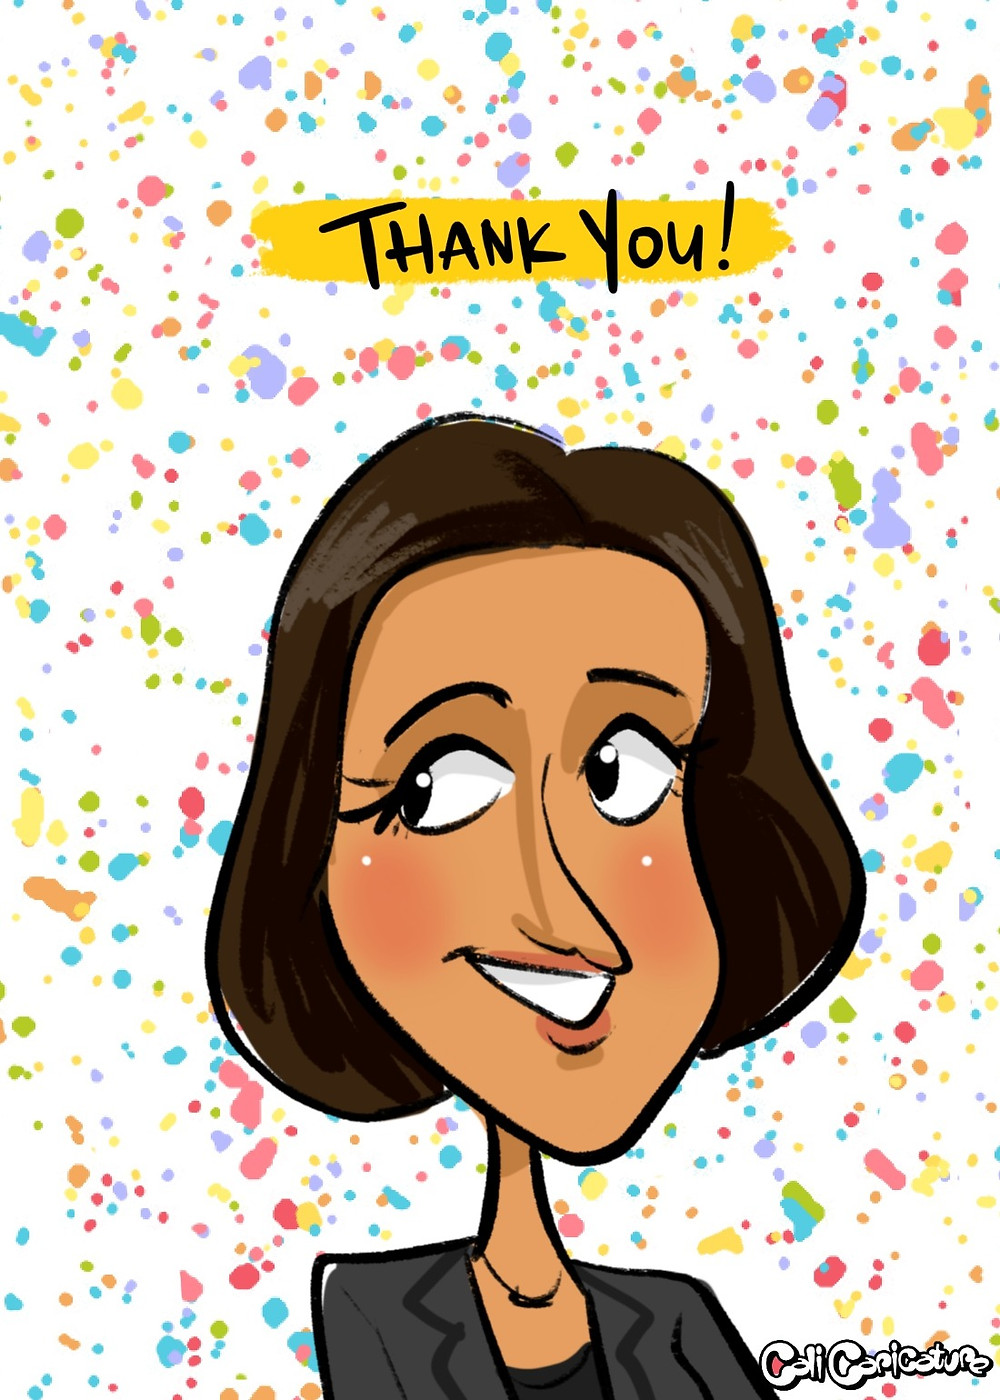 group teacher yearbook photos pictures staff faculty teachers appreciation support caricature cartoon drawing support thank you gifts idea portrait faces art fun creative